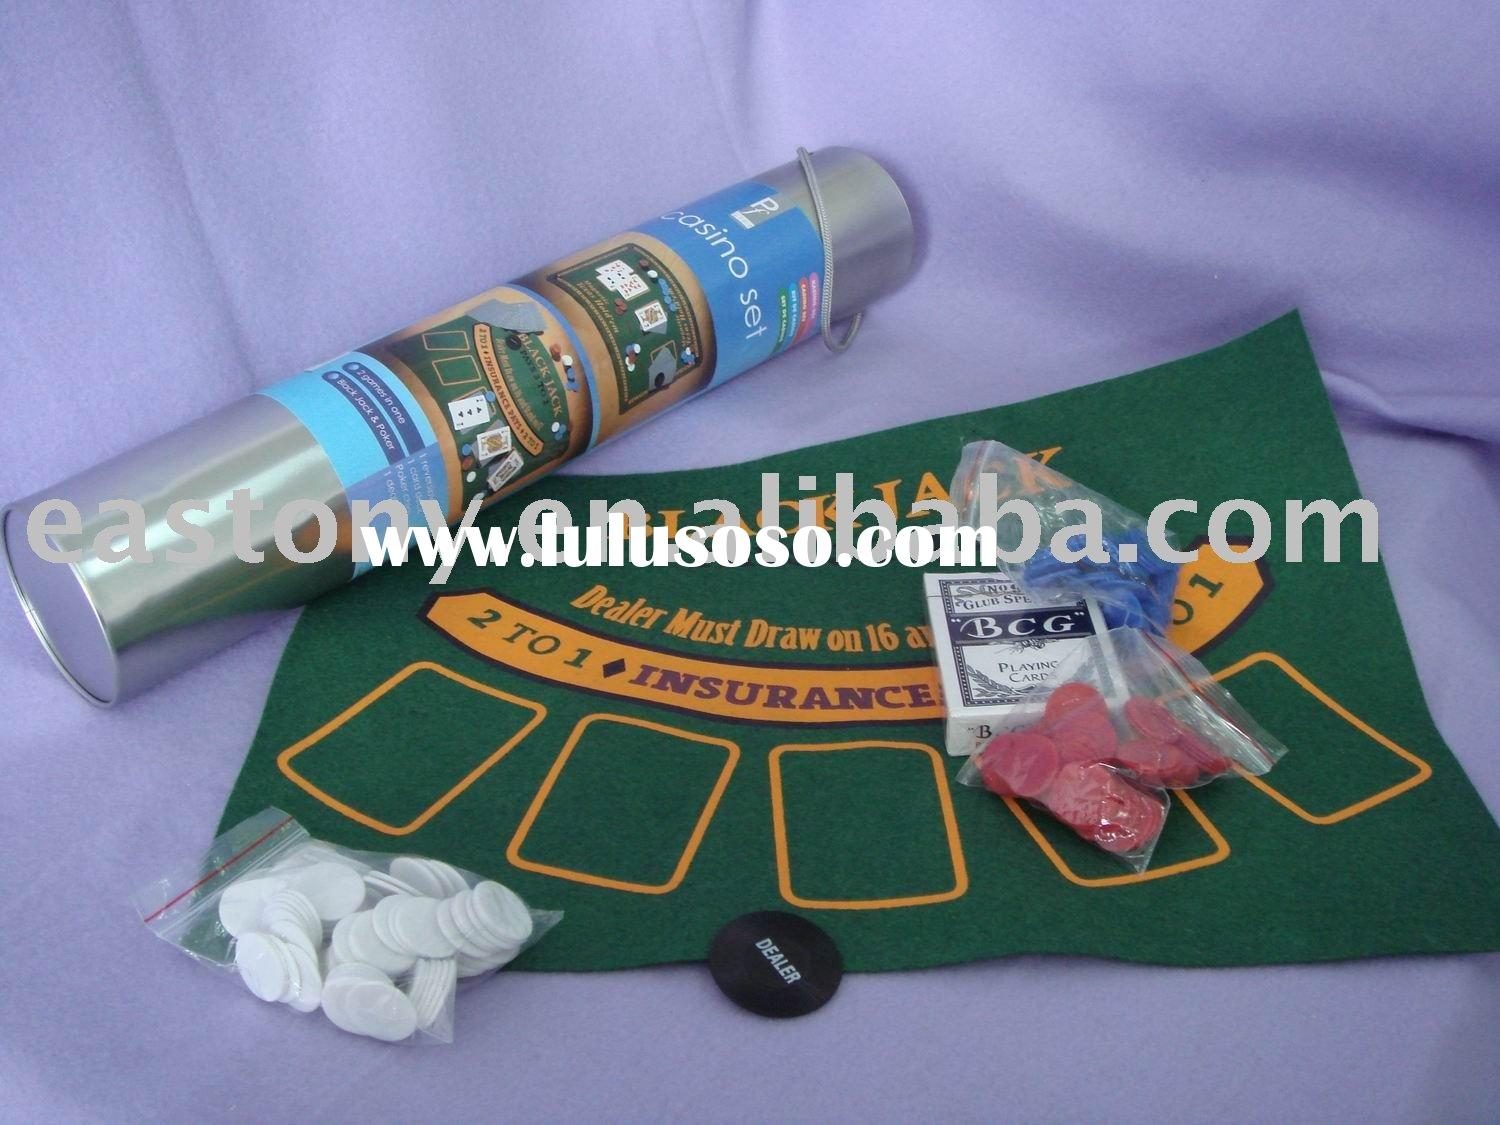 2 in 1 Casino Poker Game Set of Black Jack and Texas Hold'em for Children Games for ET-23001